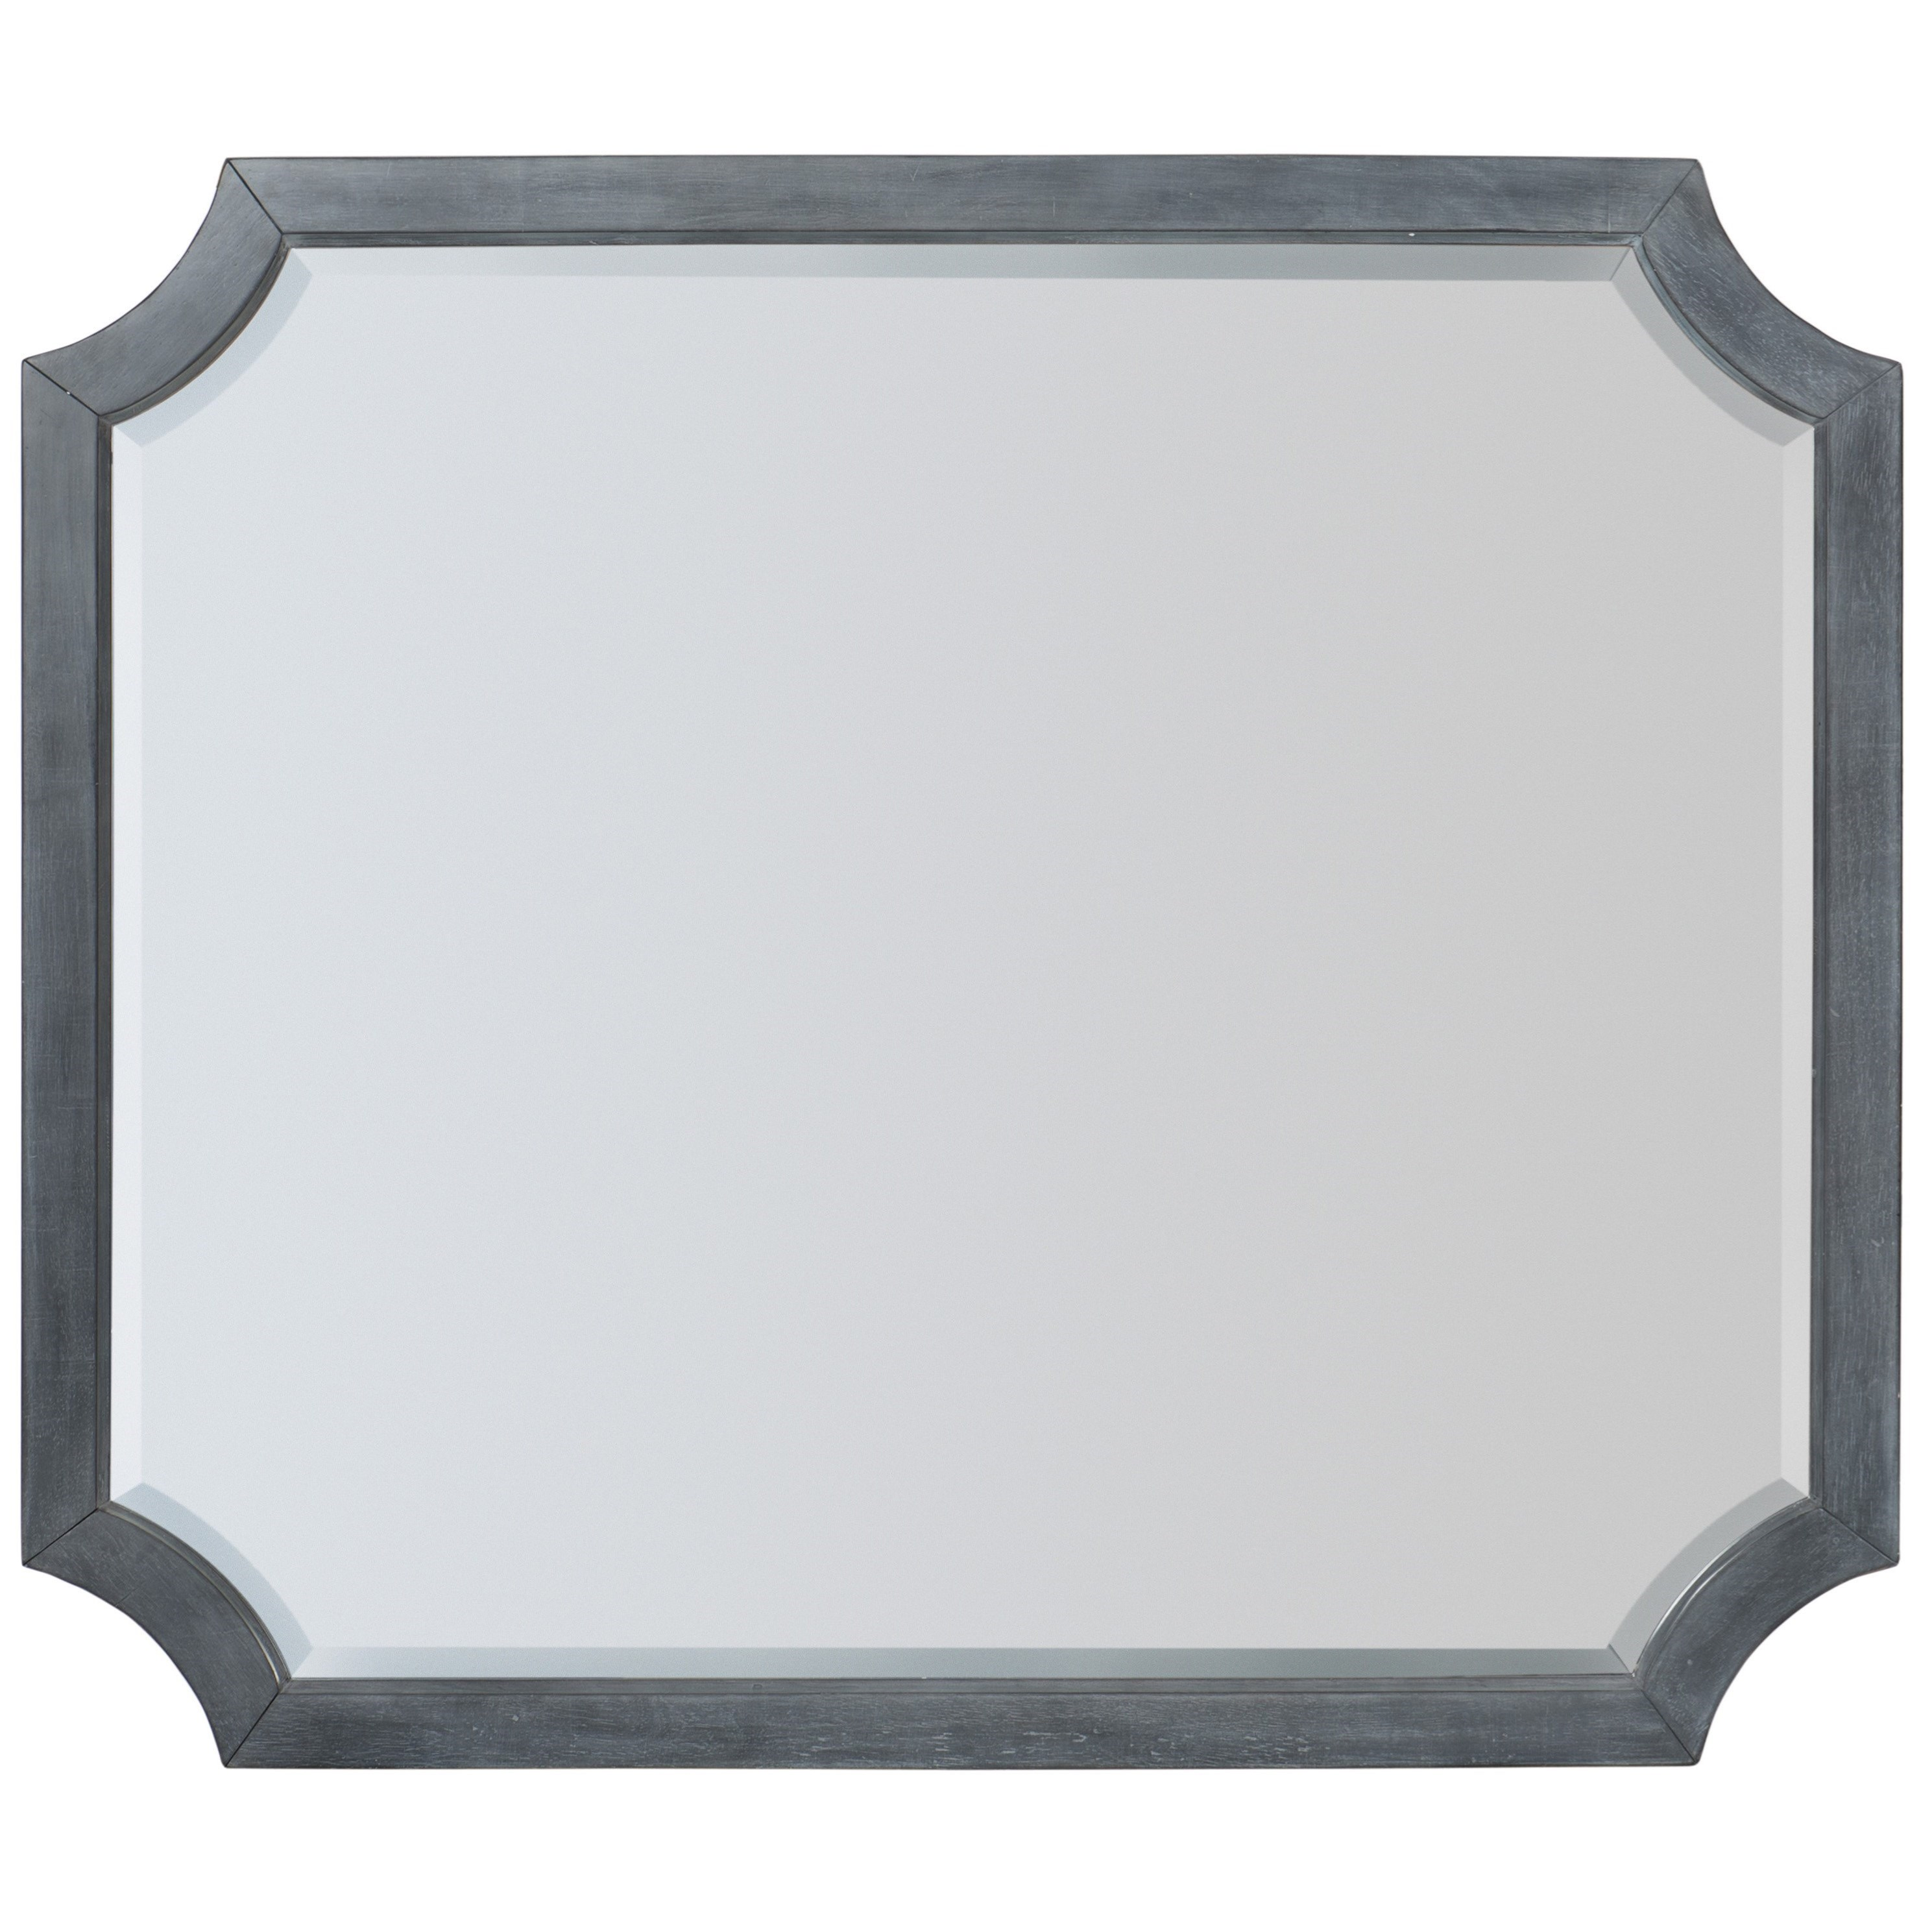 Hamilton Mirror by Hooker Furniture at Suburban Furniture